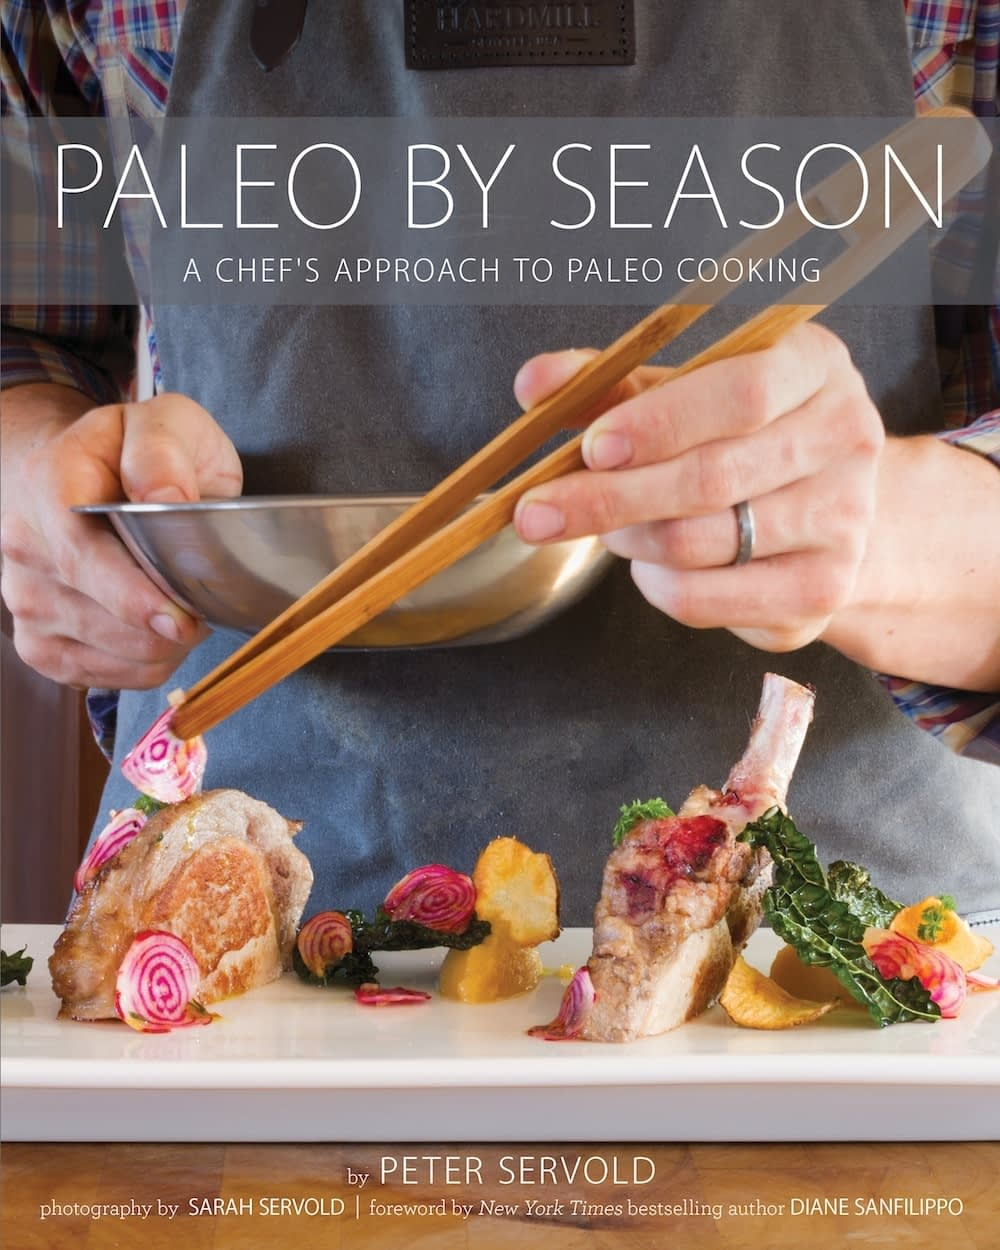 Paleo by Season book cover with an image of a mans hand holding a bowl and a pair of tongs and adding watermelon radishes as a garnish to lamb chops